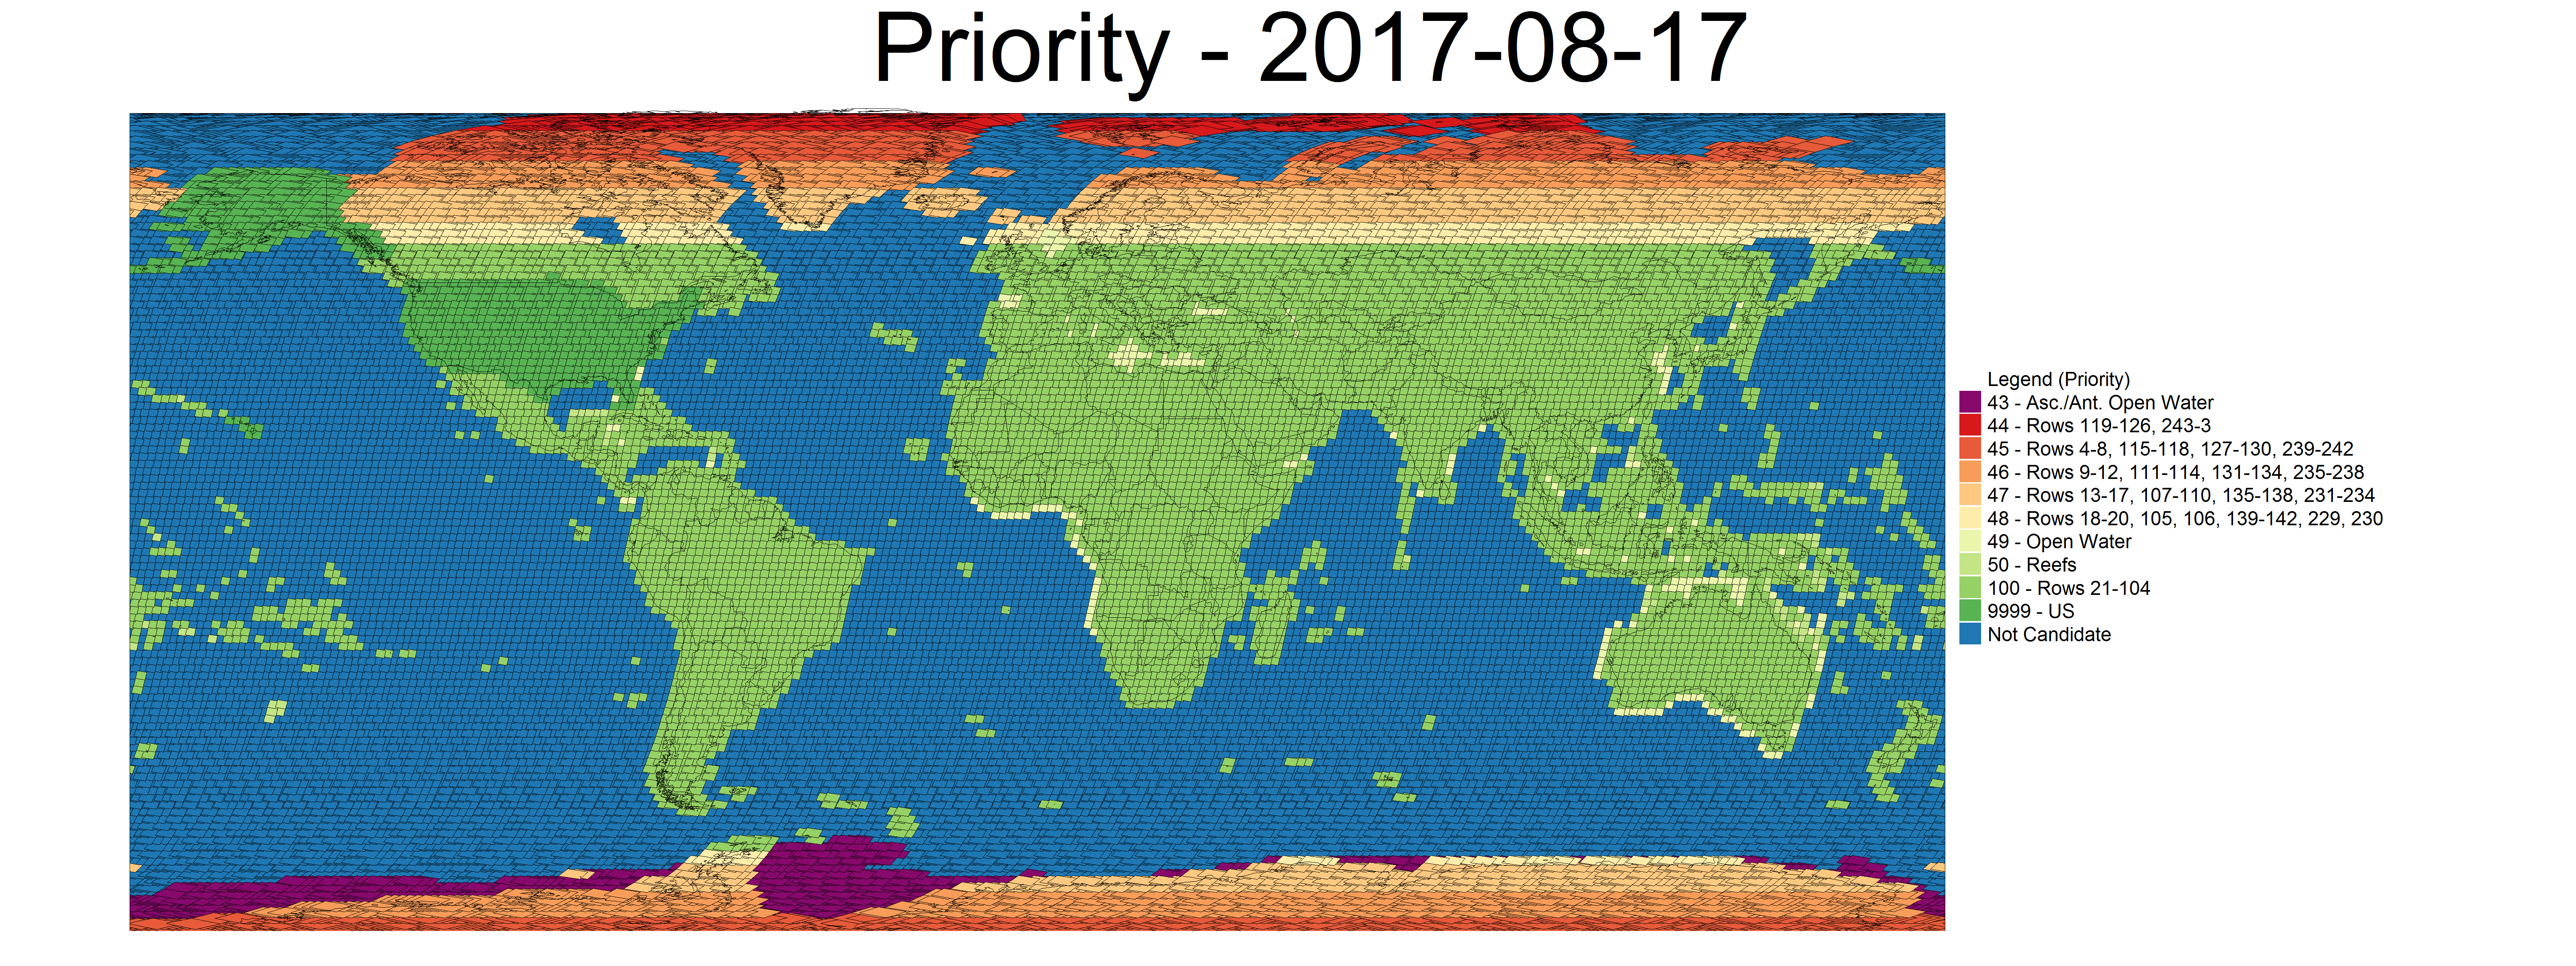 Distribution map of Landsat 8 acquisition priorities